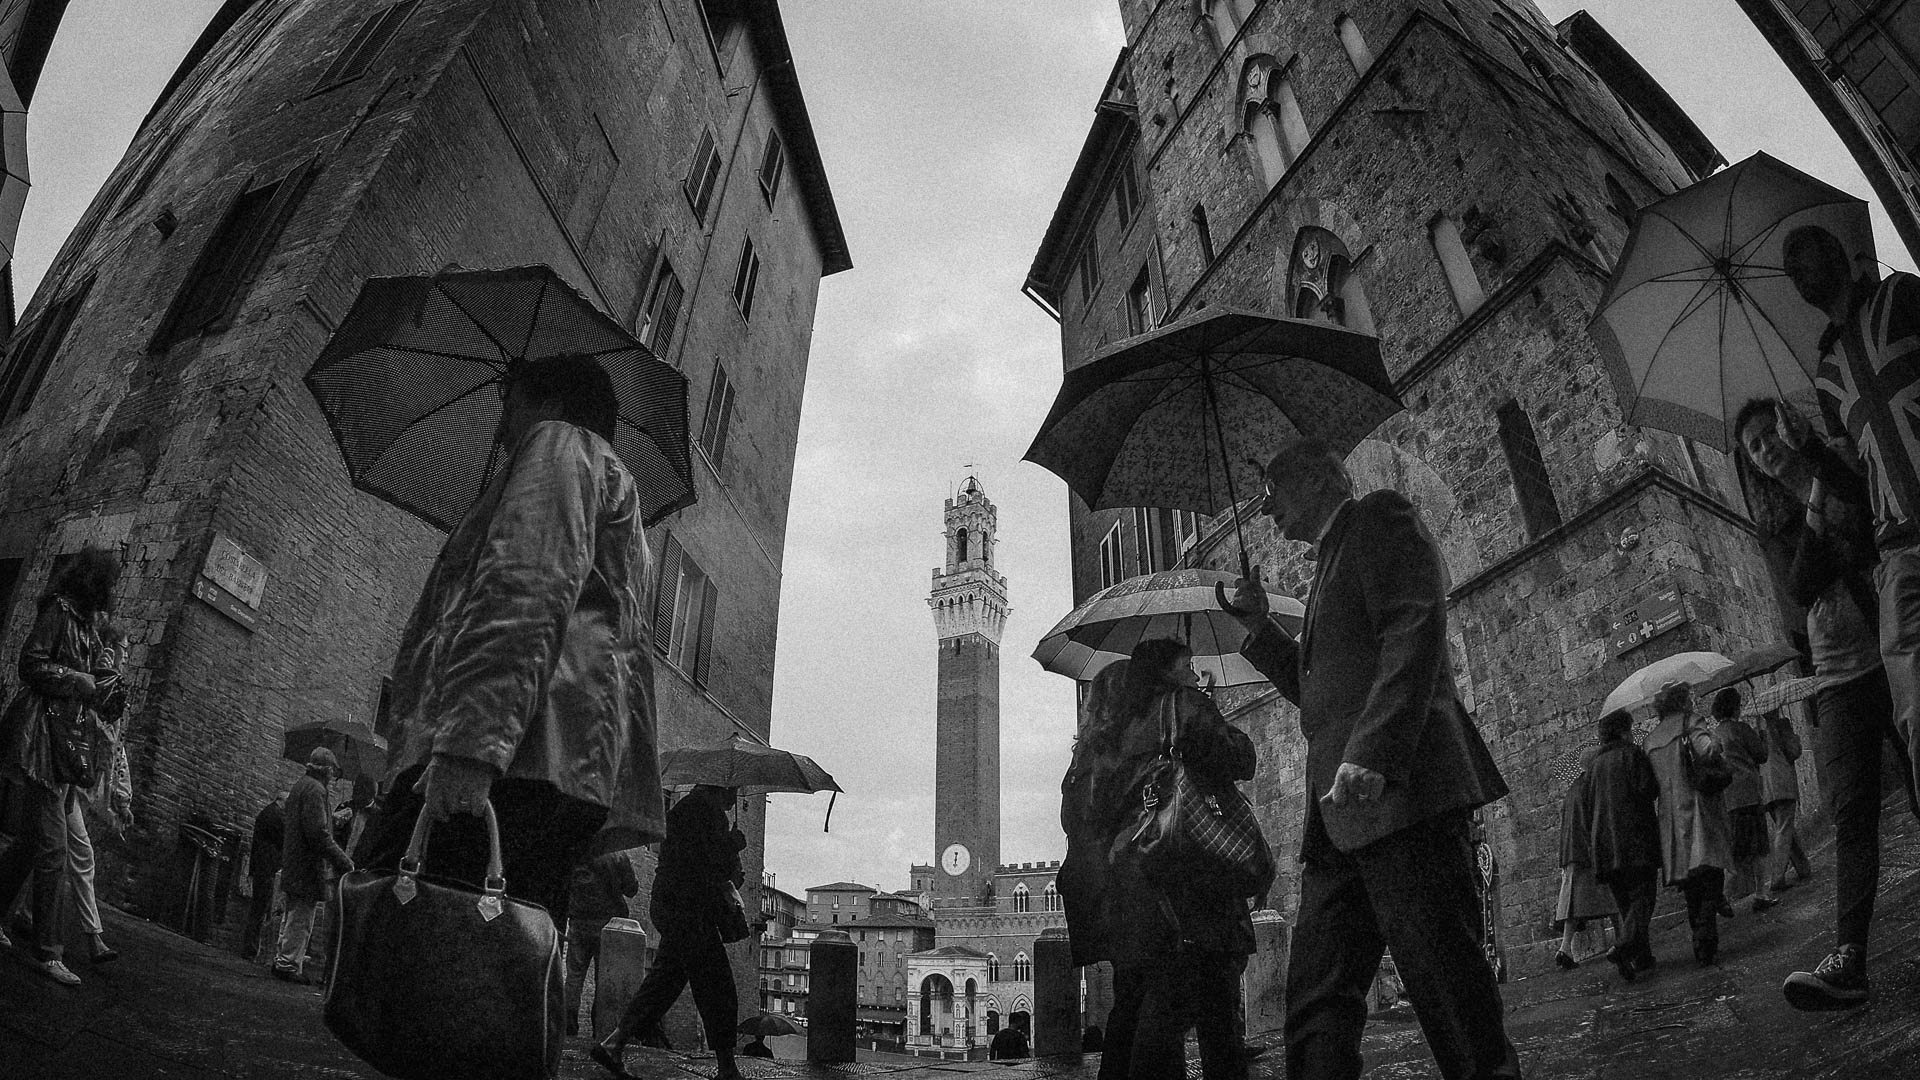 Siena, Tuscany, Italy|klyuen travel photography